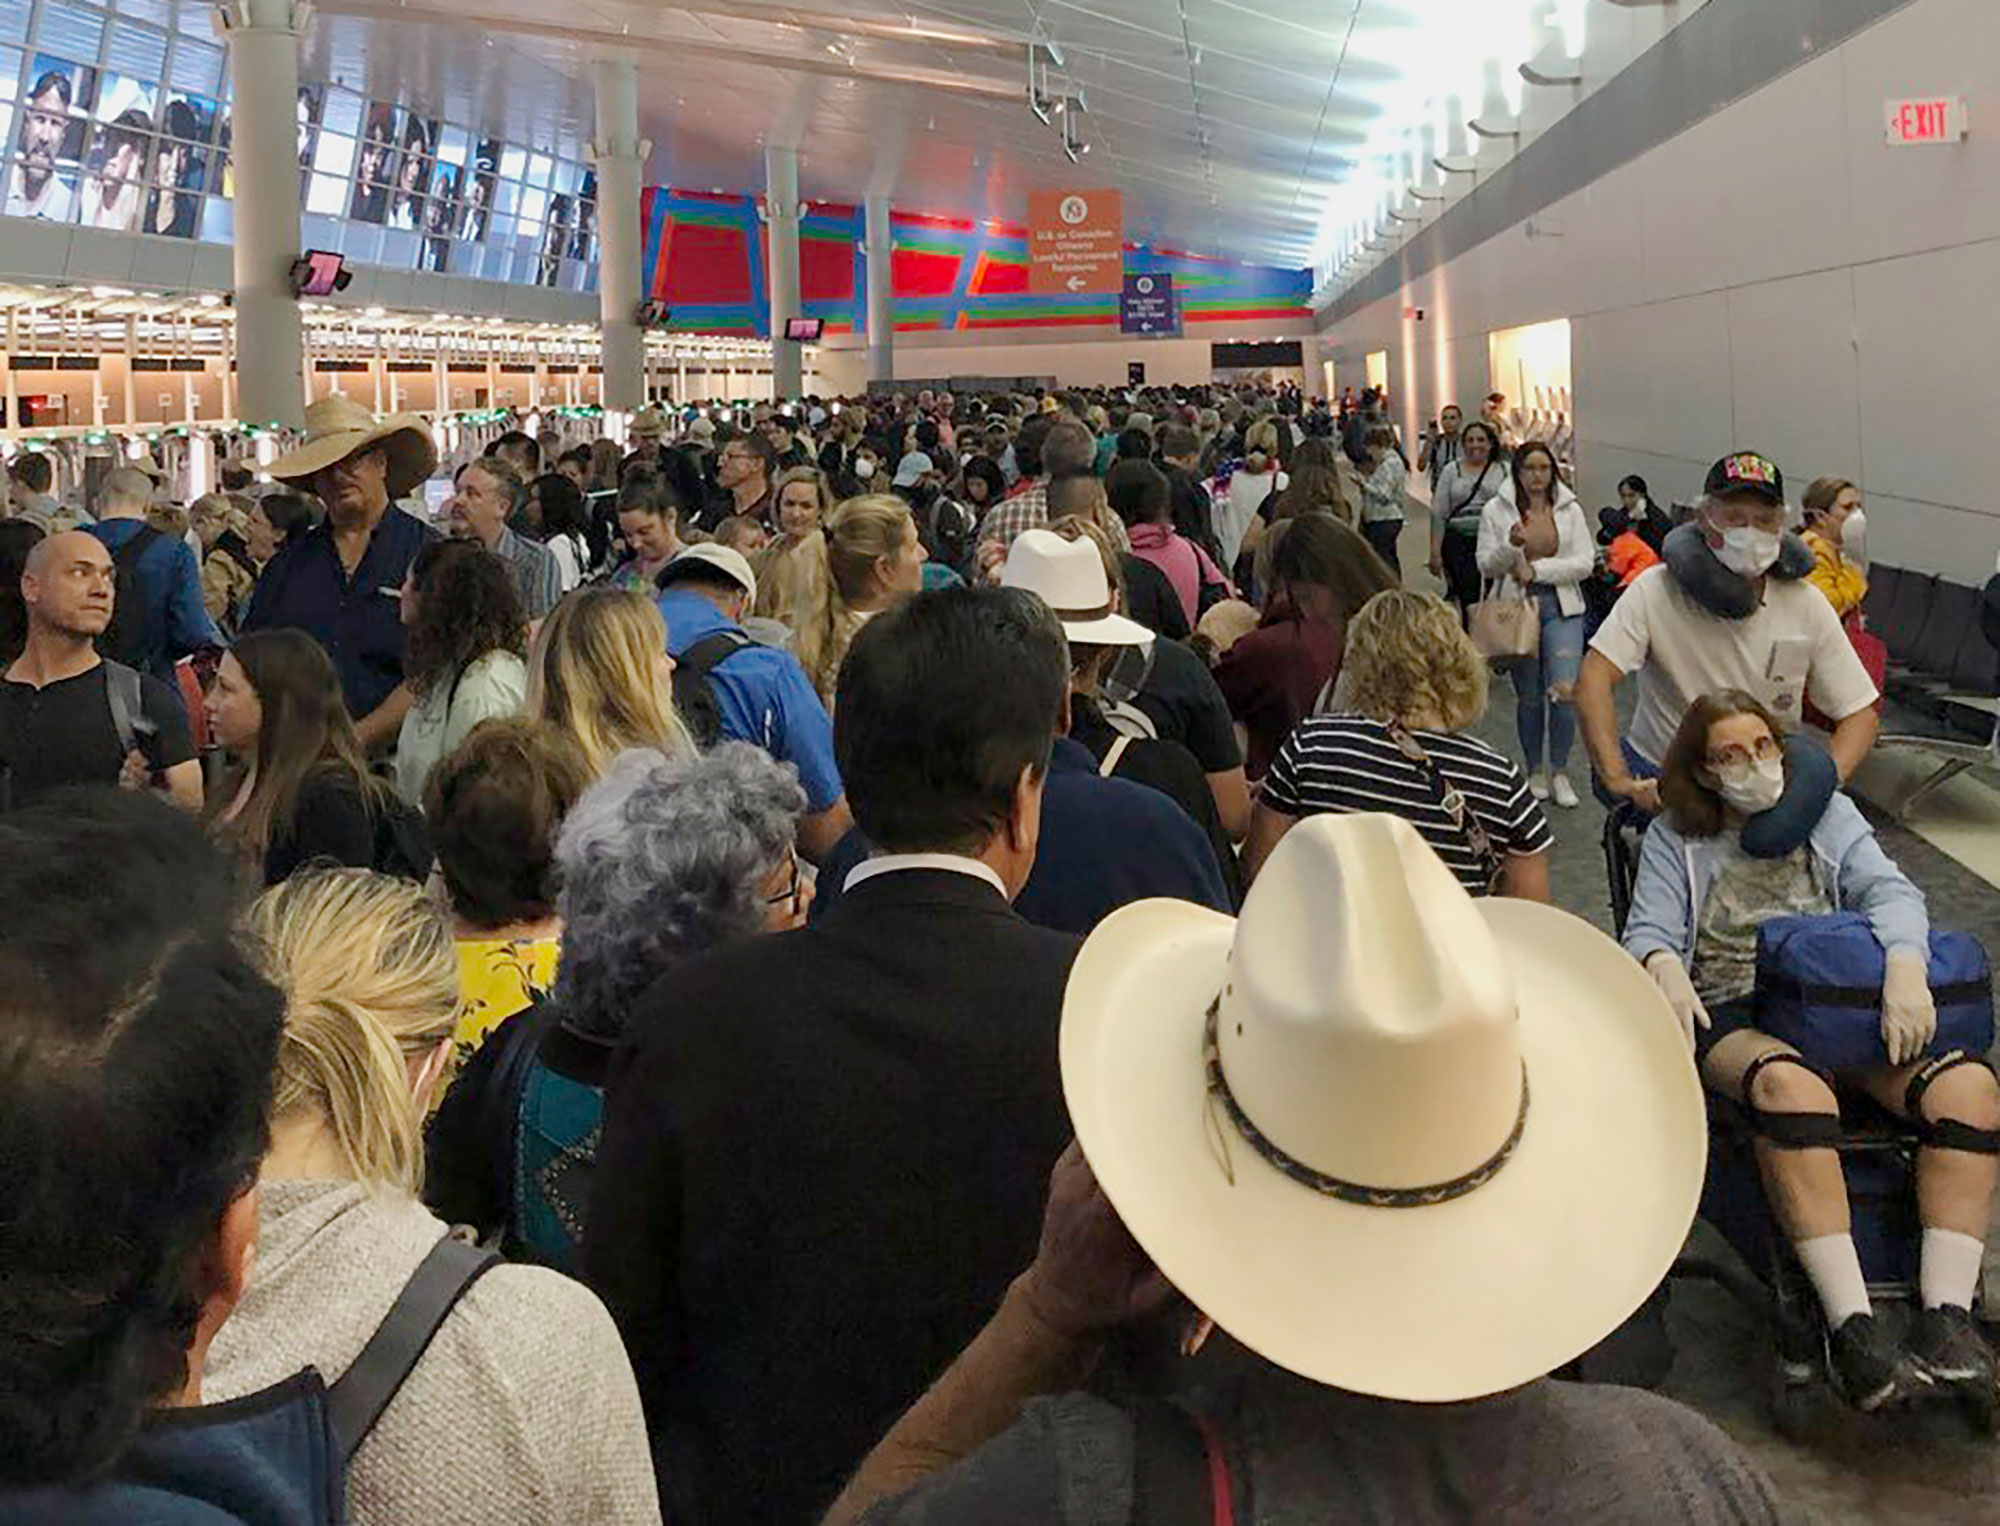 People wait in line to go through the customs at Dallas Fort Worth International Airport in Grapevine, Texas, on March 14.